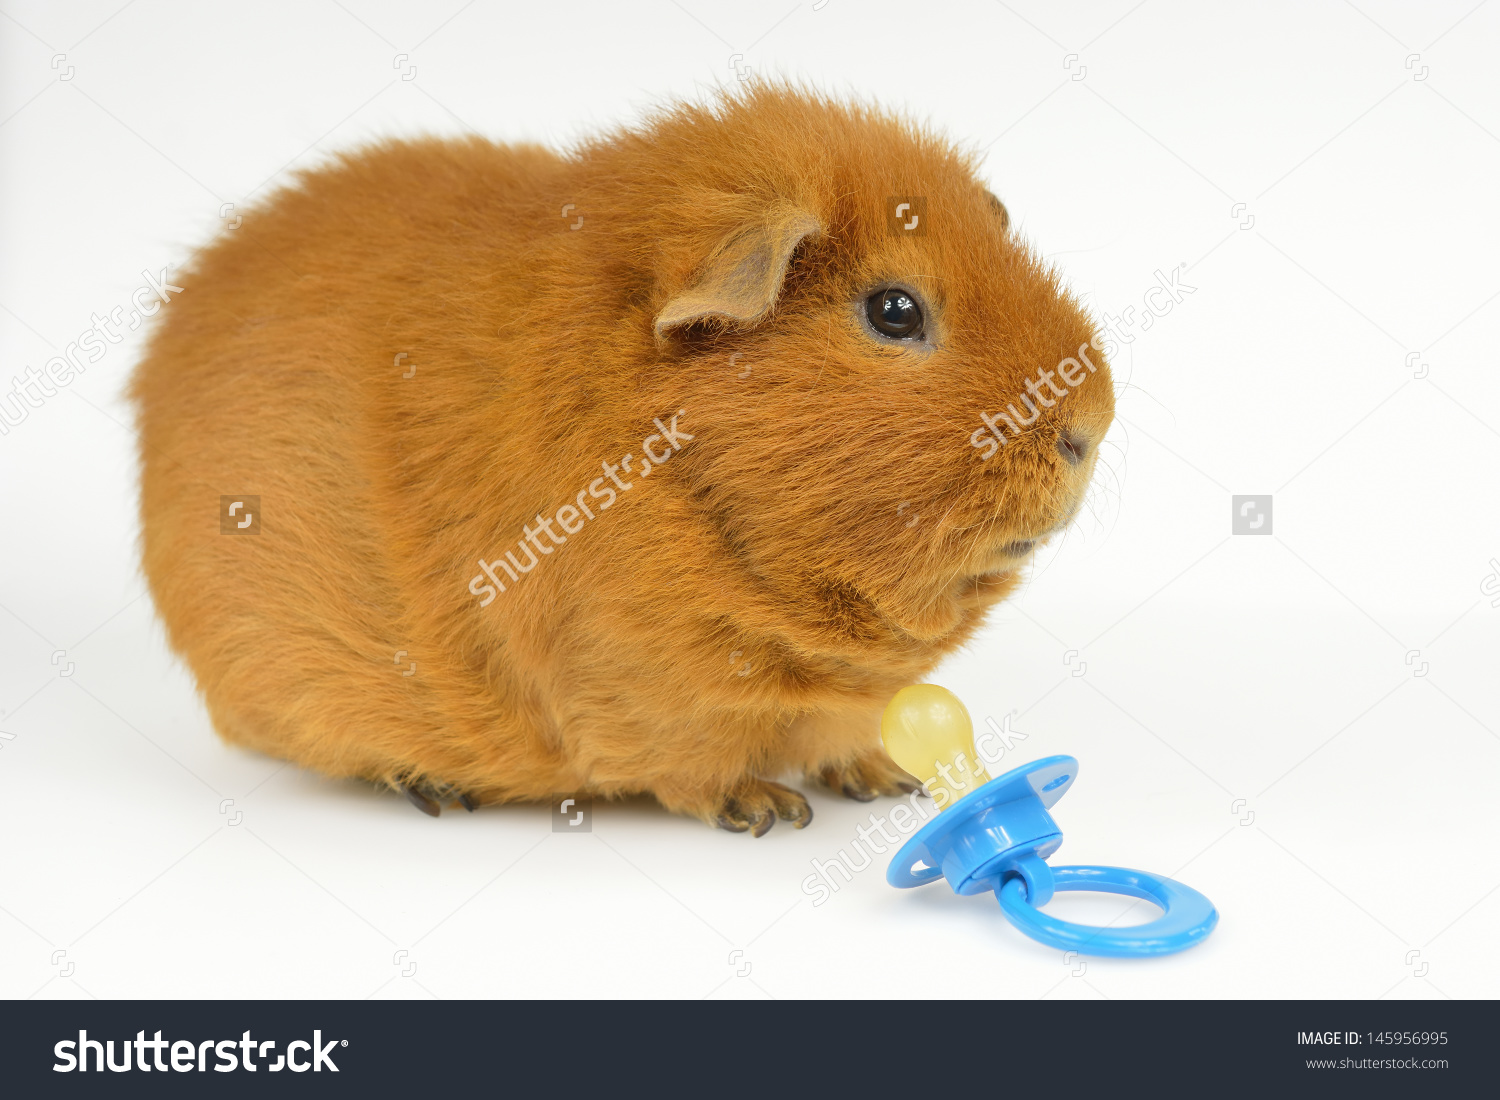 Usteddy Guinea Pig Pacifier Side View Stock Photo 145956995.